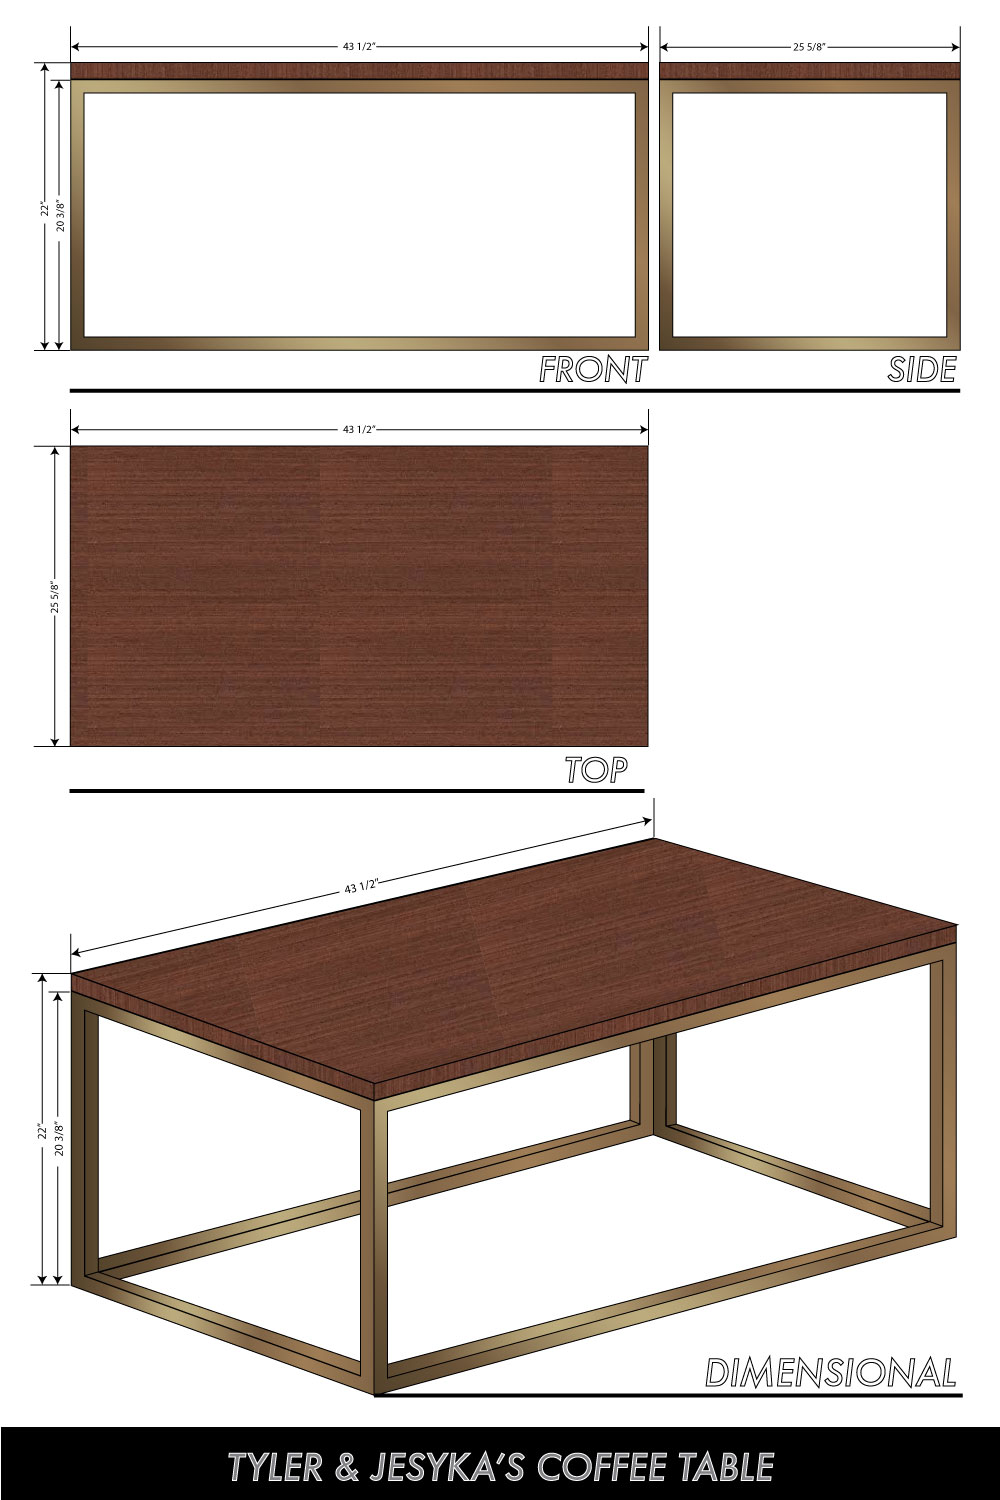 Building our own coffee table visual vocabularie - Average coffee table height ...